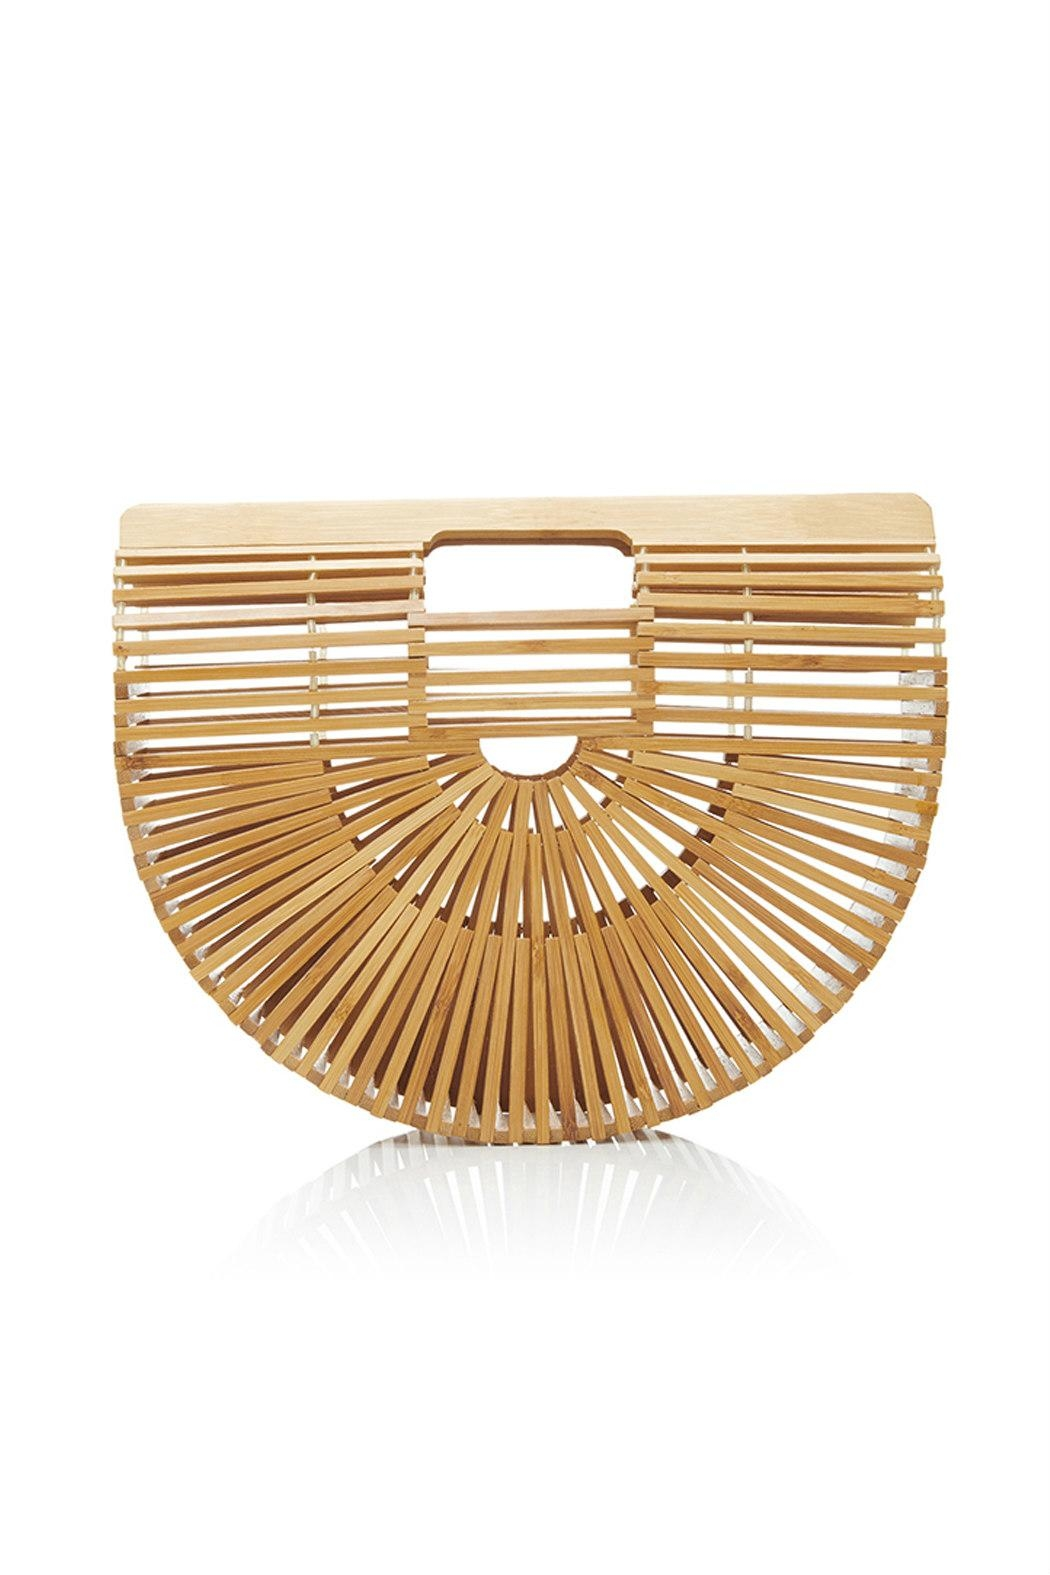 Catherine K Collections Bamboo Clutch Bag - Main Image